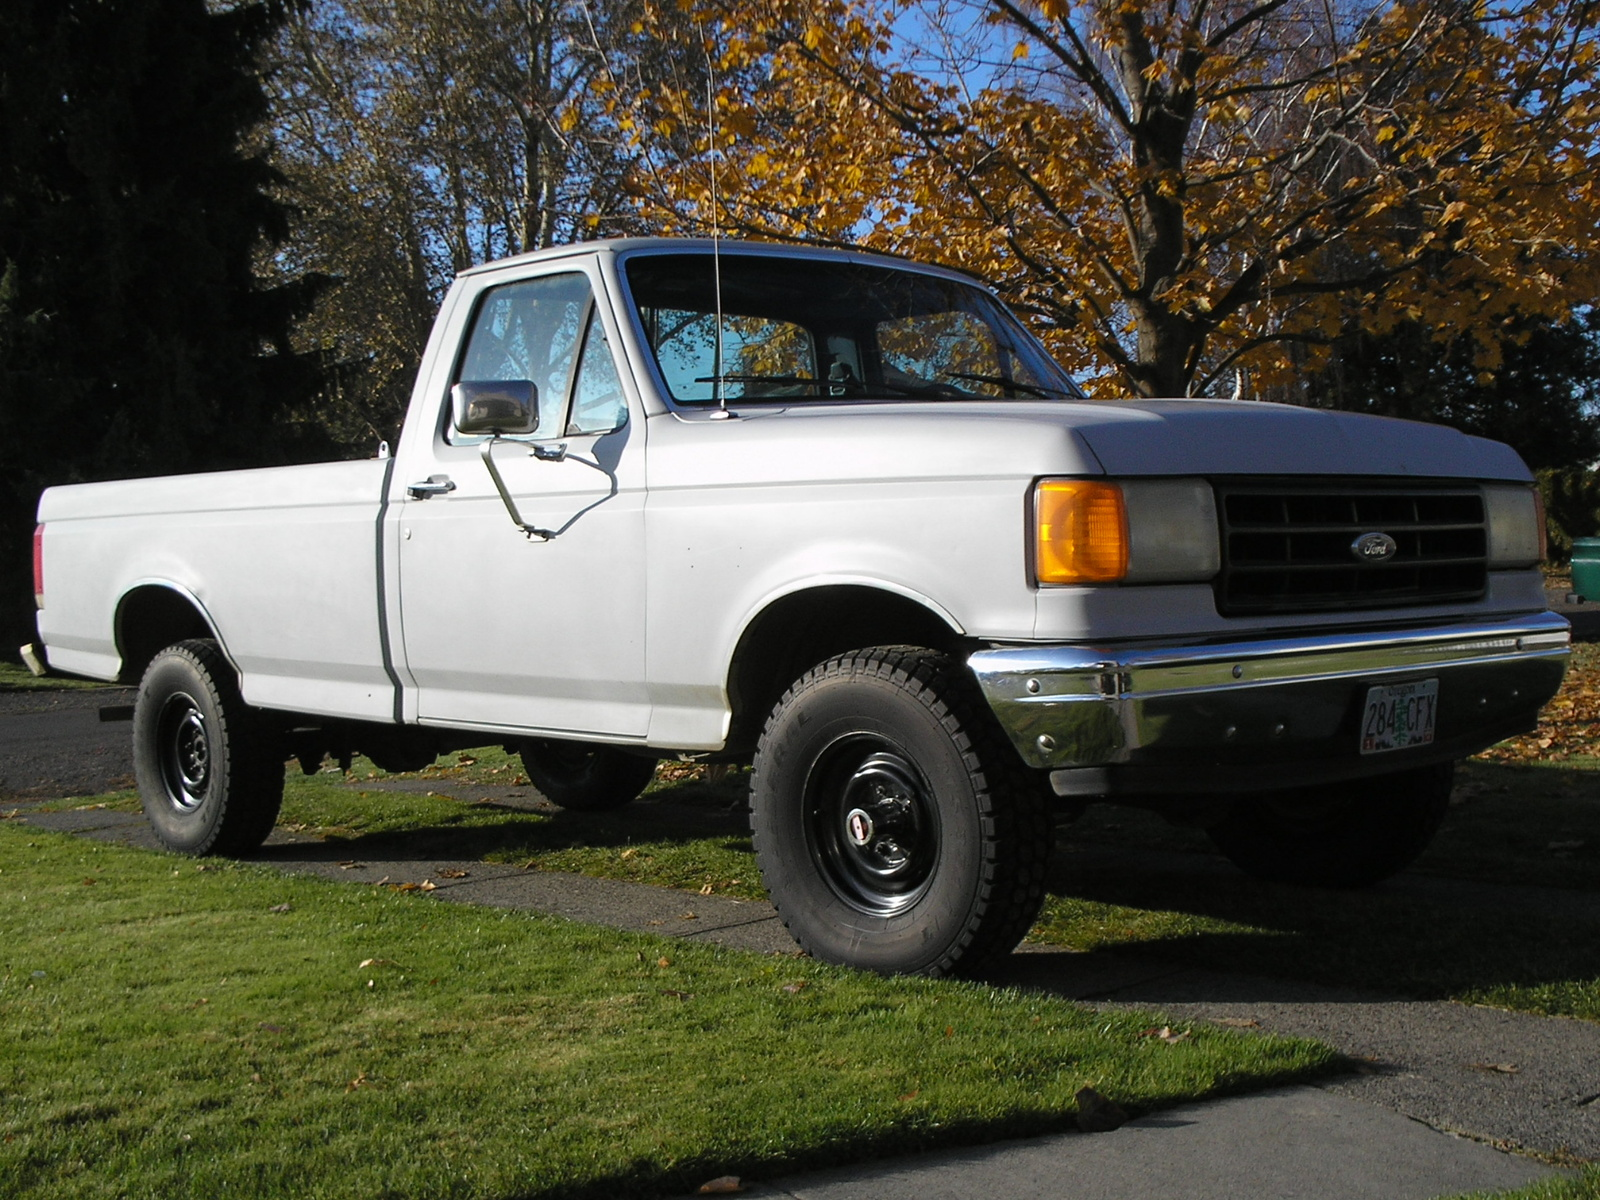 Ford f-150 1987 photo - 3